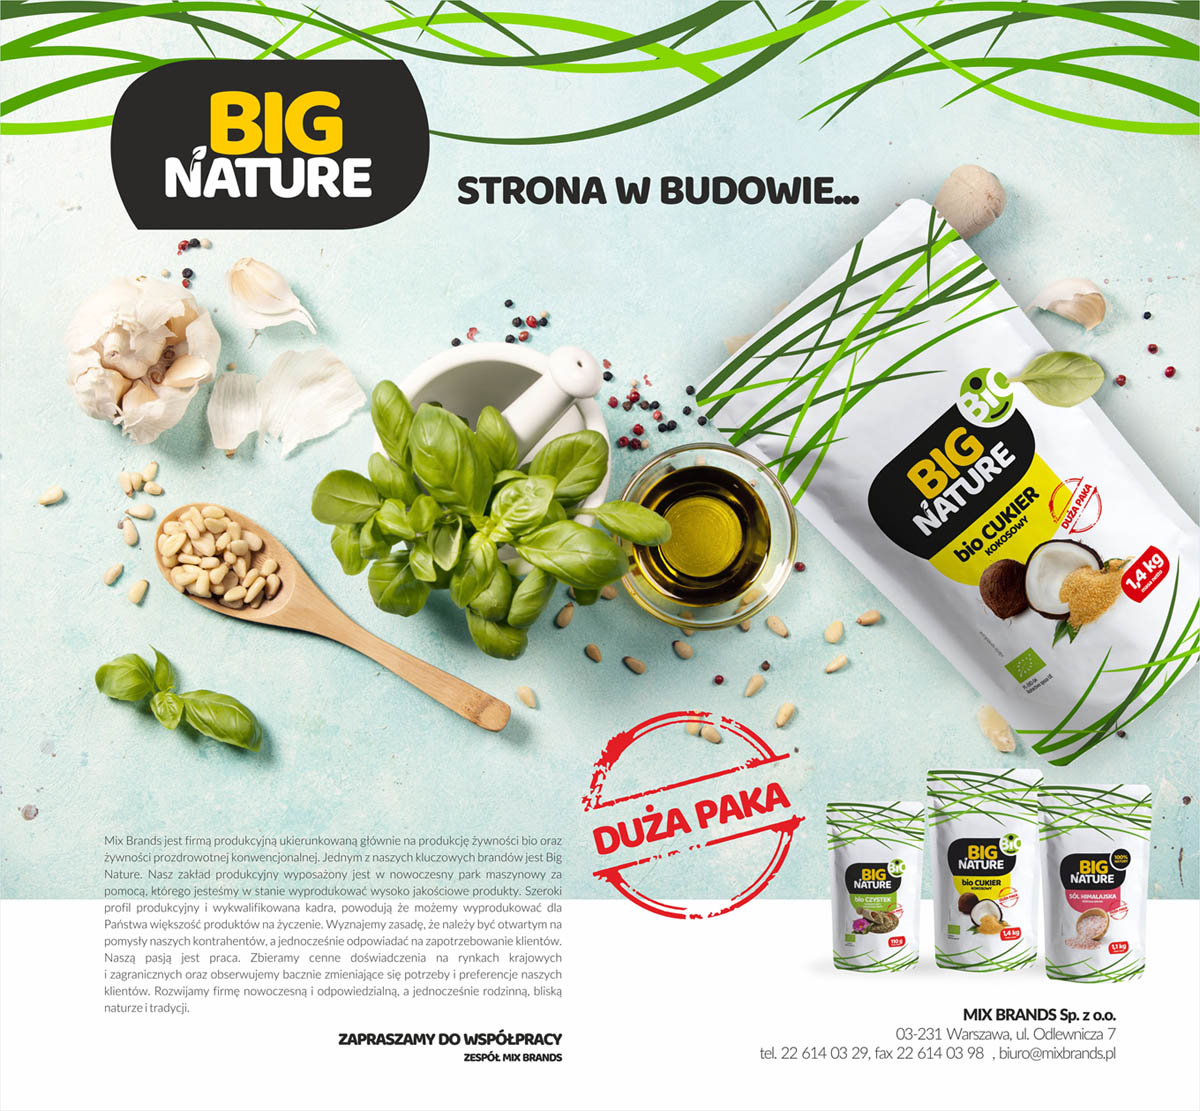 BIG NATURE - MIX BRANDS Sp. z o.o.